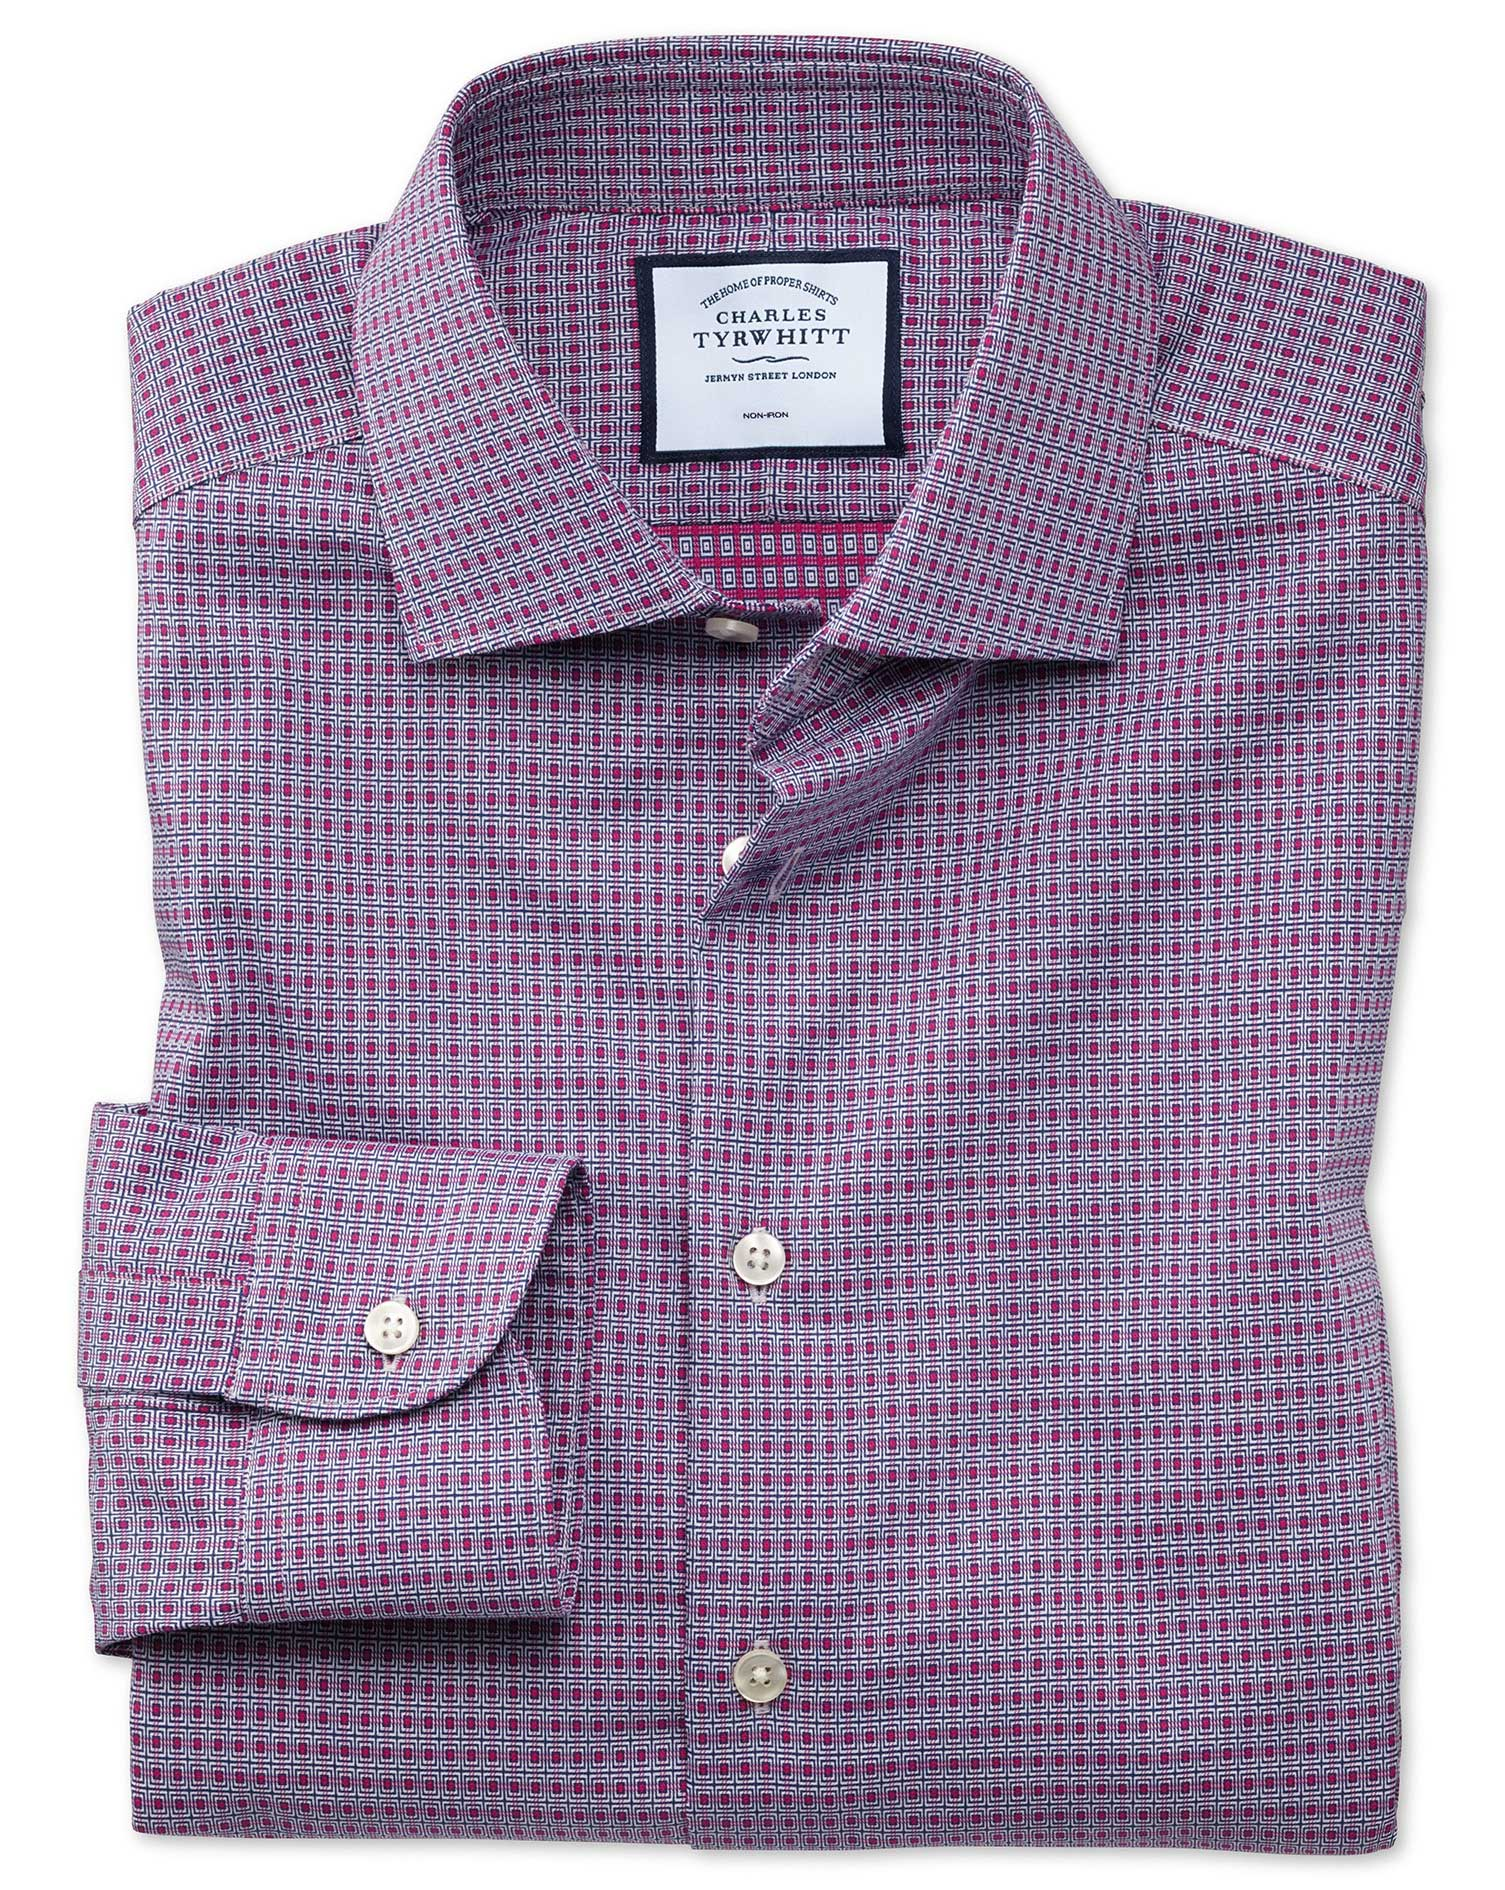 Classic Fit Business Casual Non-Iron Pink and Navy Square Dobby Cotton Formal Shirt Single Cuff Size 16/36 by Charles Tyrwhitt from Charles Tyrwhitt